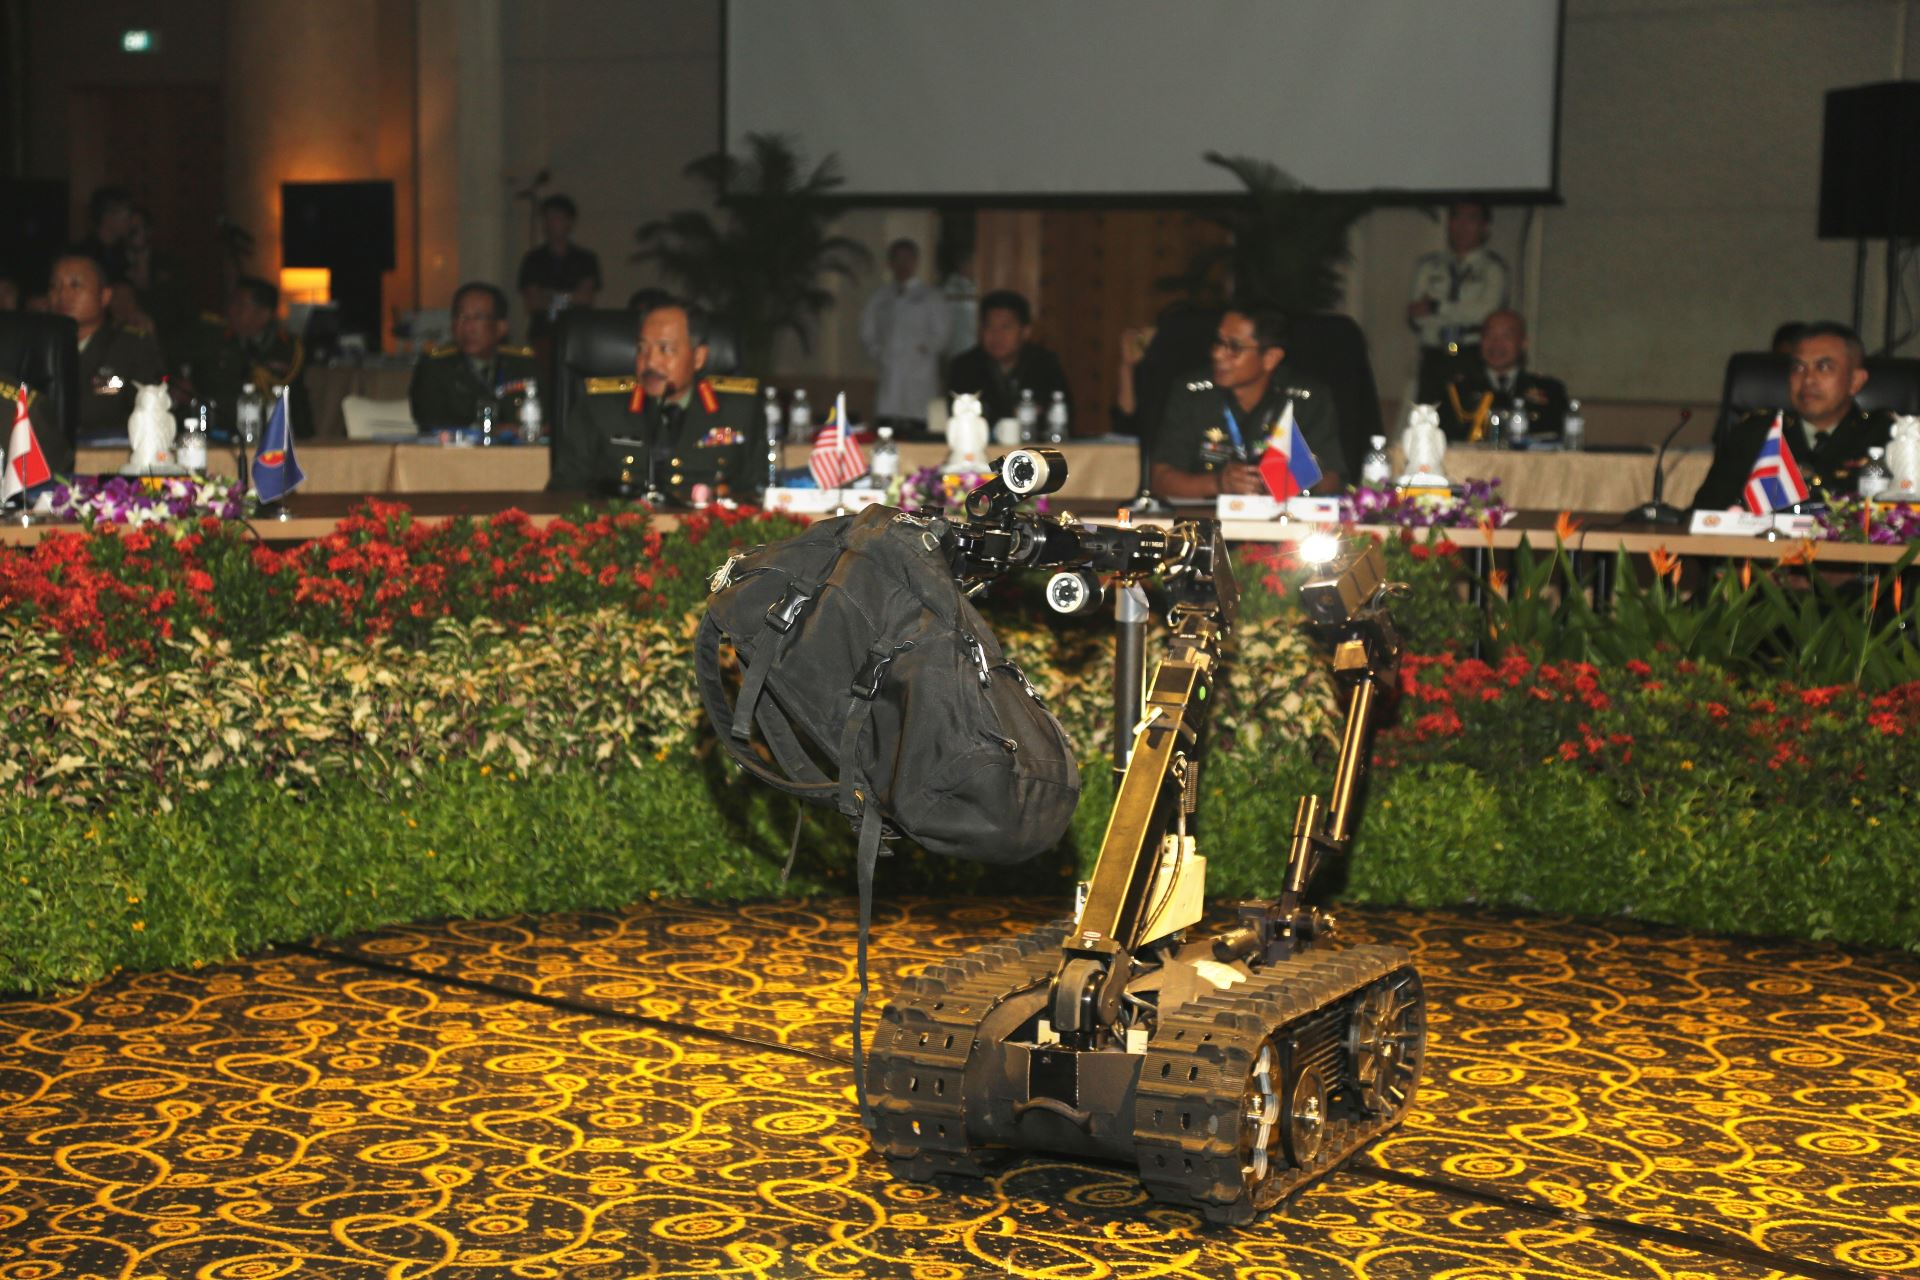 A Talon Unmanned Ground Vehicle removes a suspicious bag for containment in a demonstration by the Singapore Army's Chemical, Biological, Radiological and Explosives (CBRE) Defence Group.